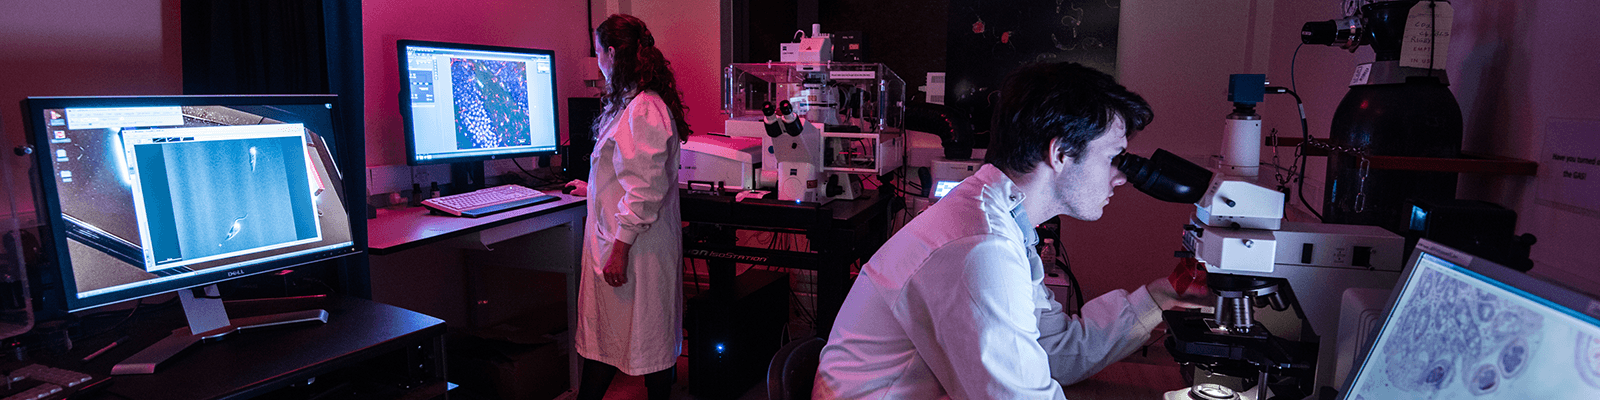 Two researchers working in a Lancaster University lab